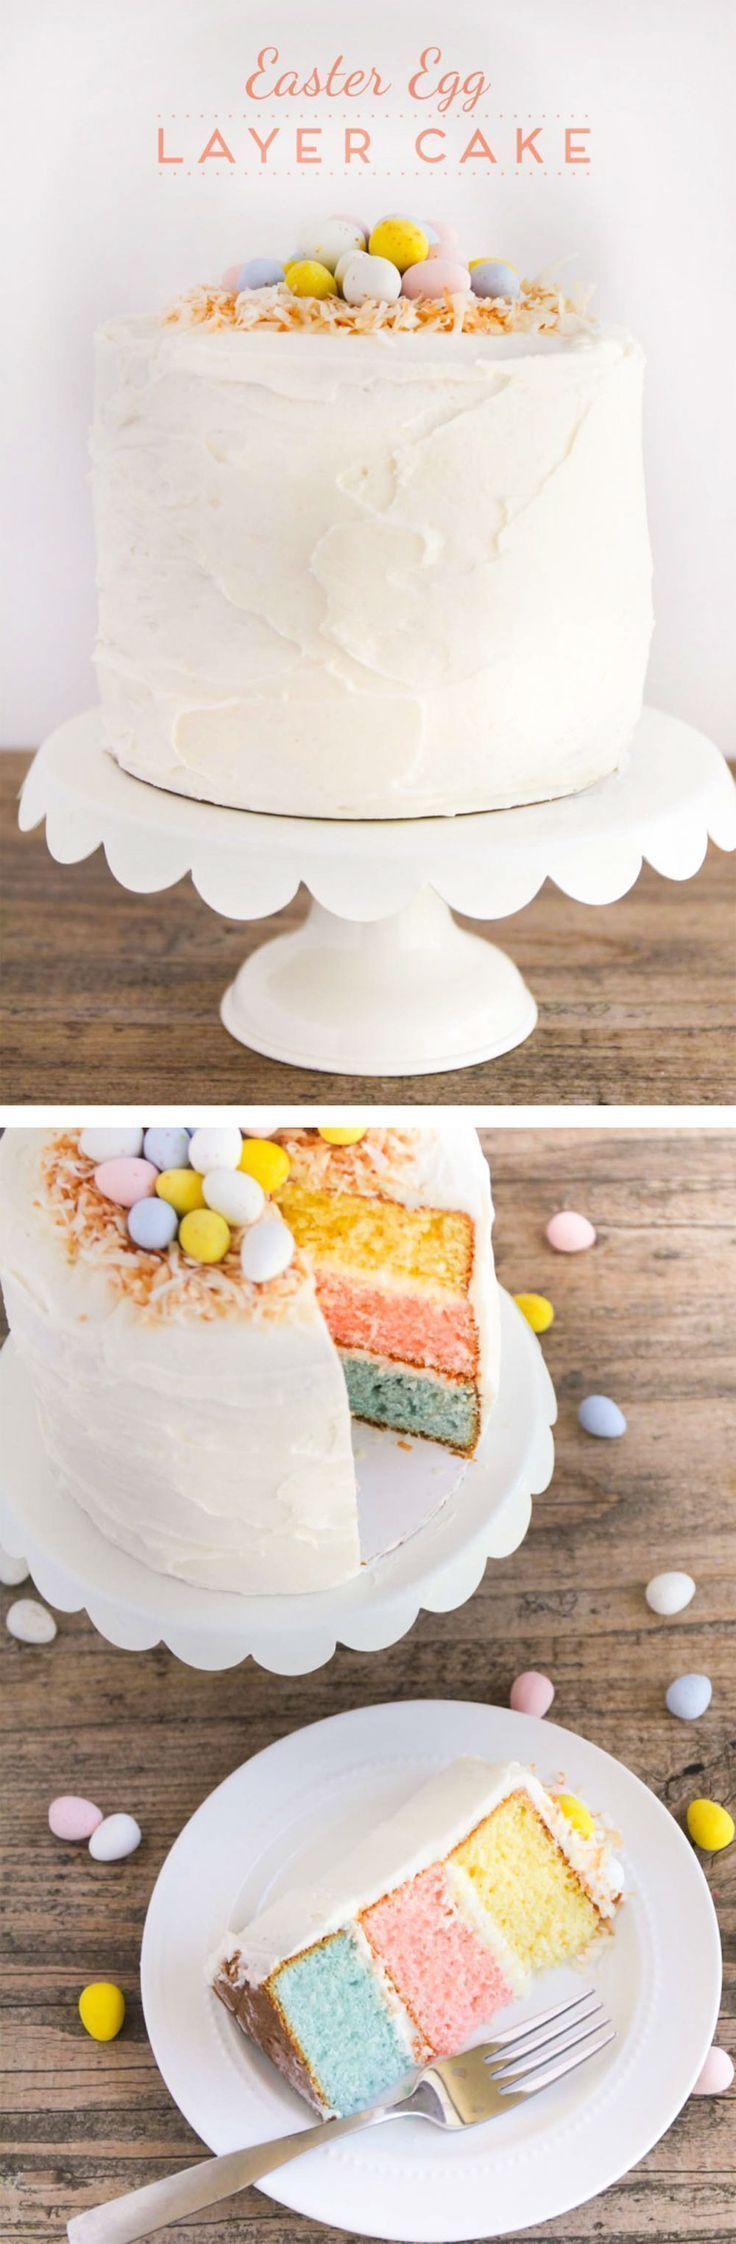 Easter Egg Layered Cake A colorful